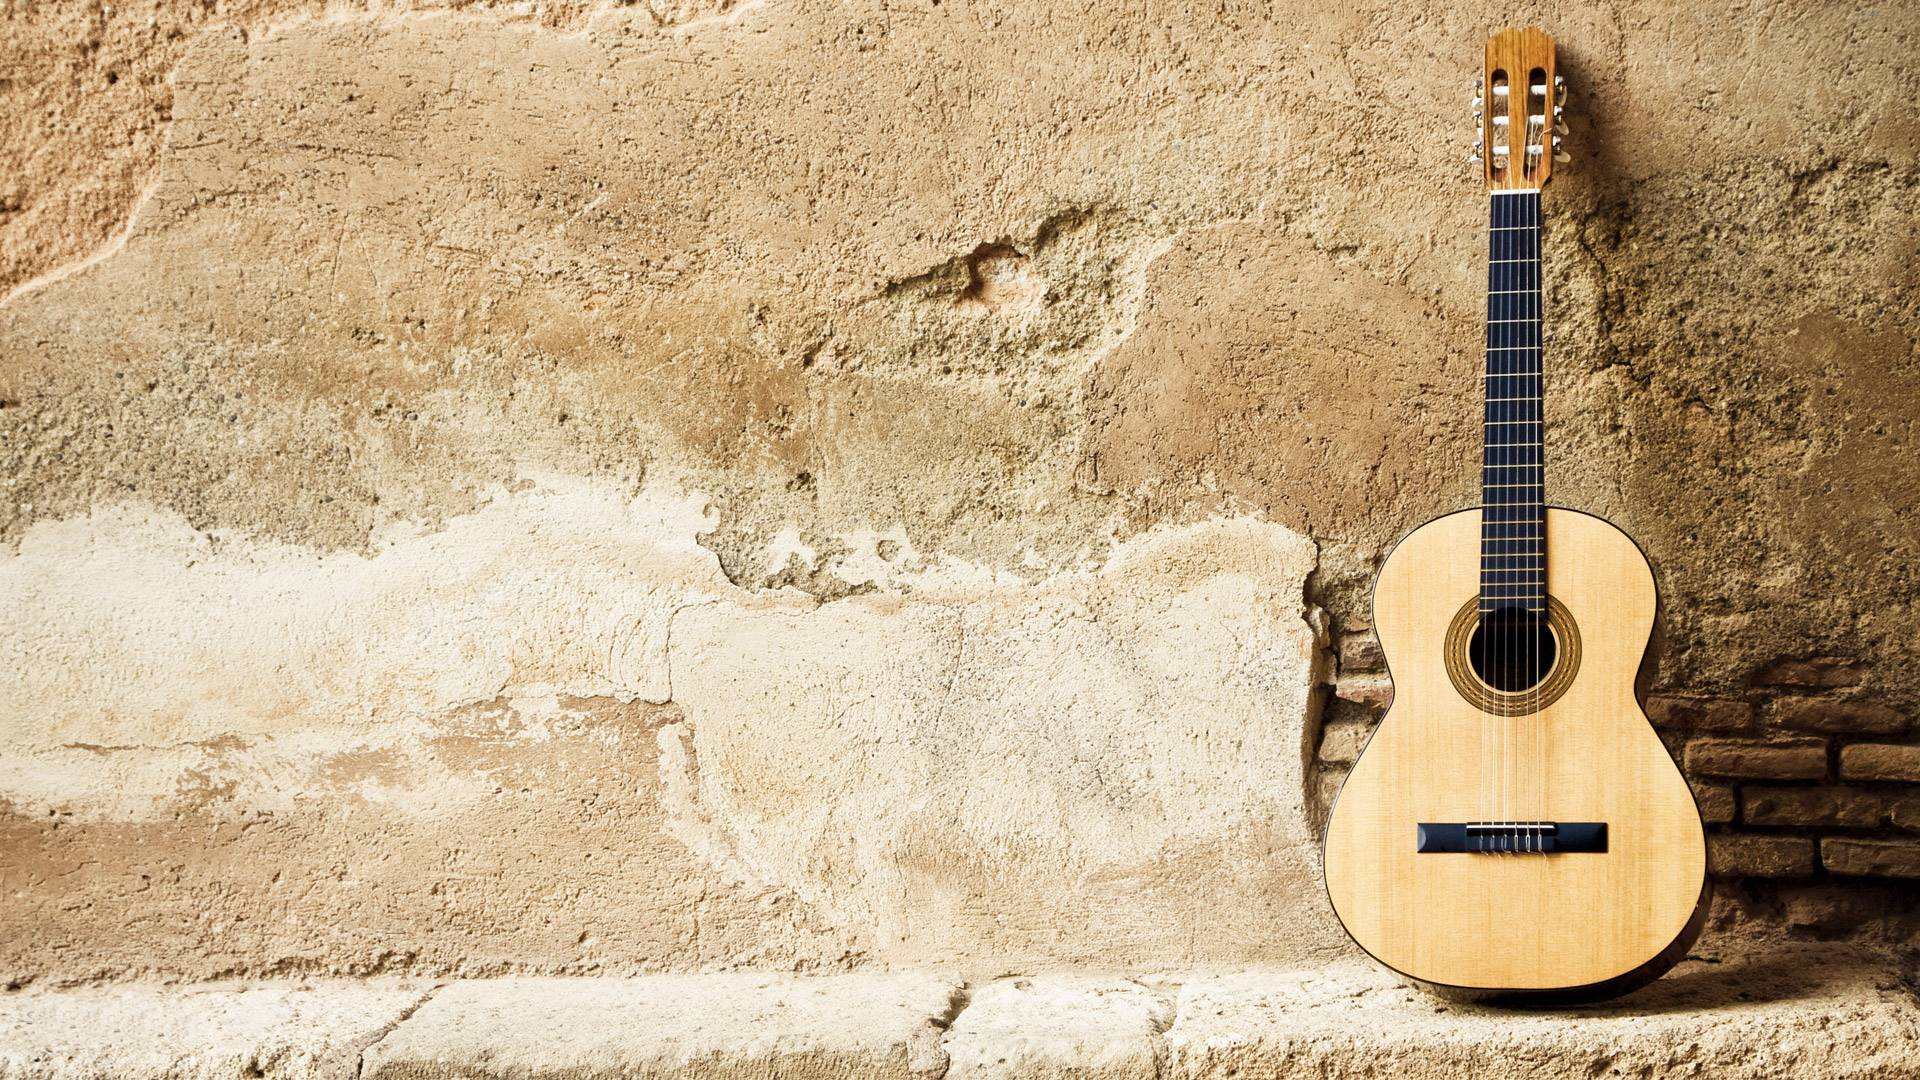 Wallpapers For > Acoustic Guitar Wallpapers For Desktop Hd